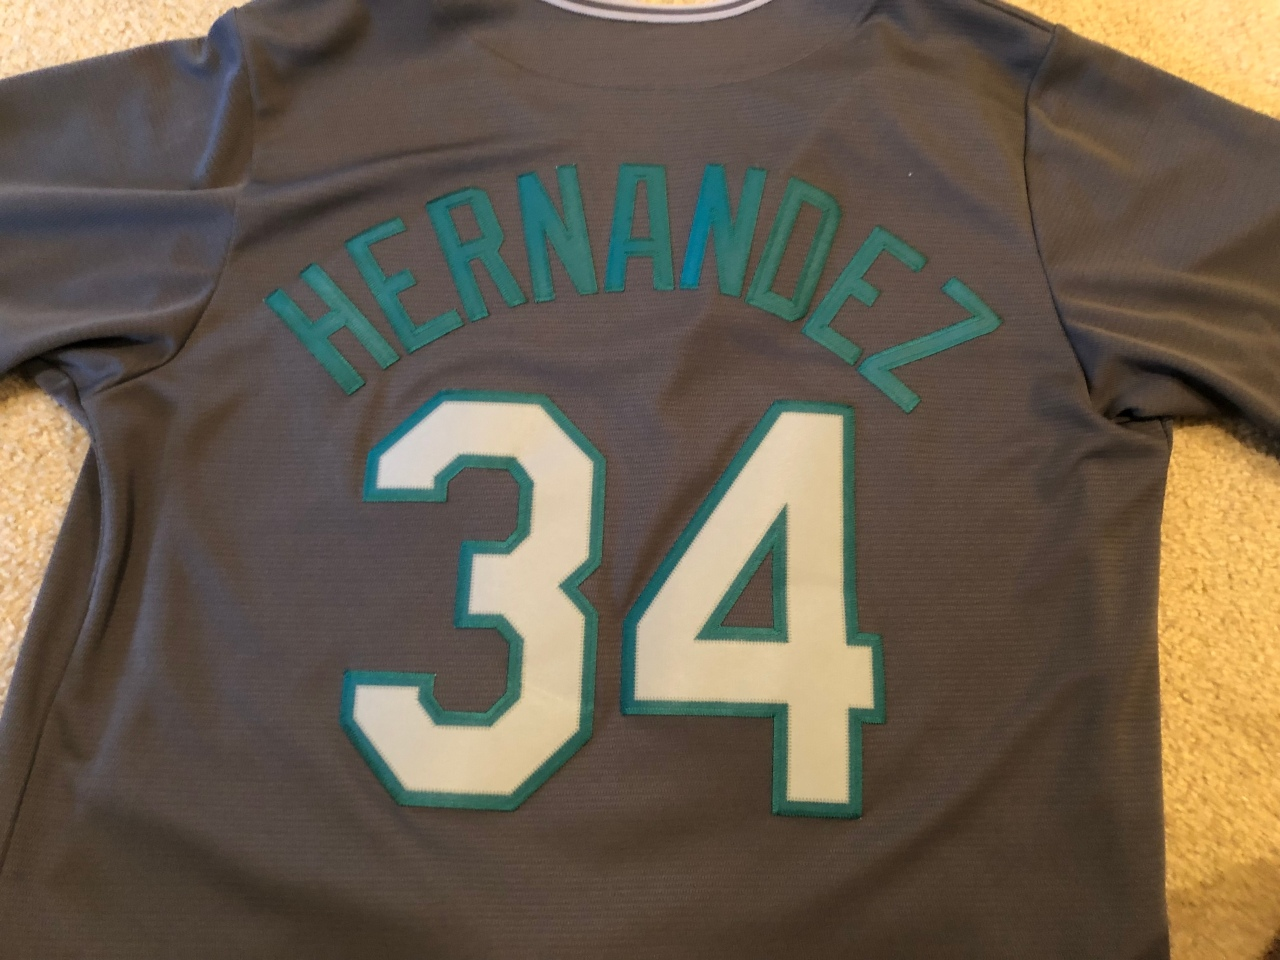 Baseball jersey back with 34 and Hernandez